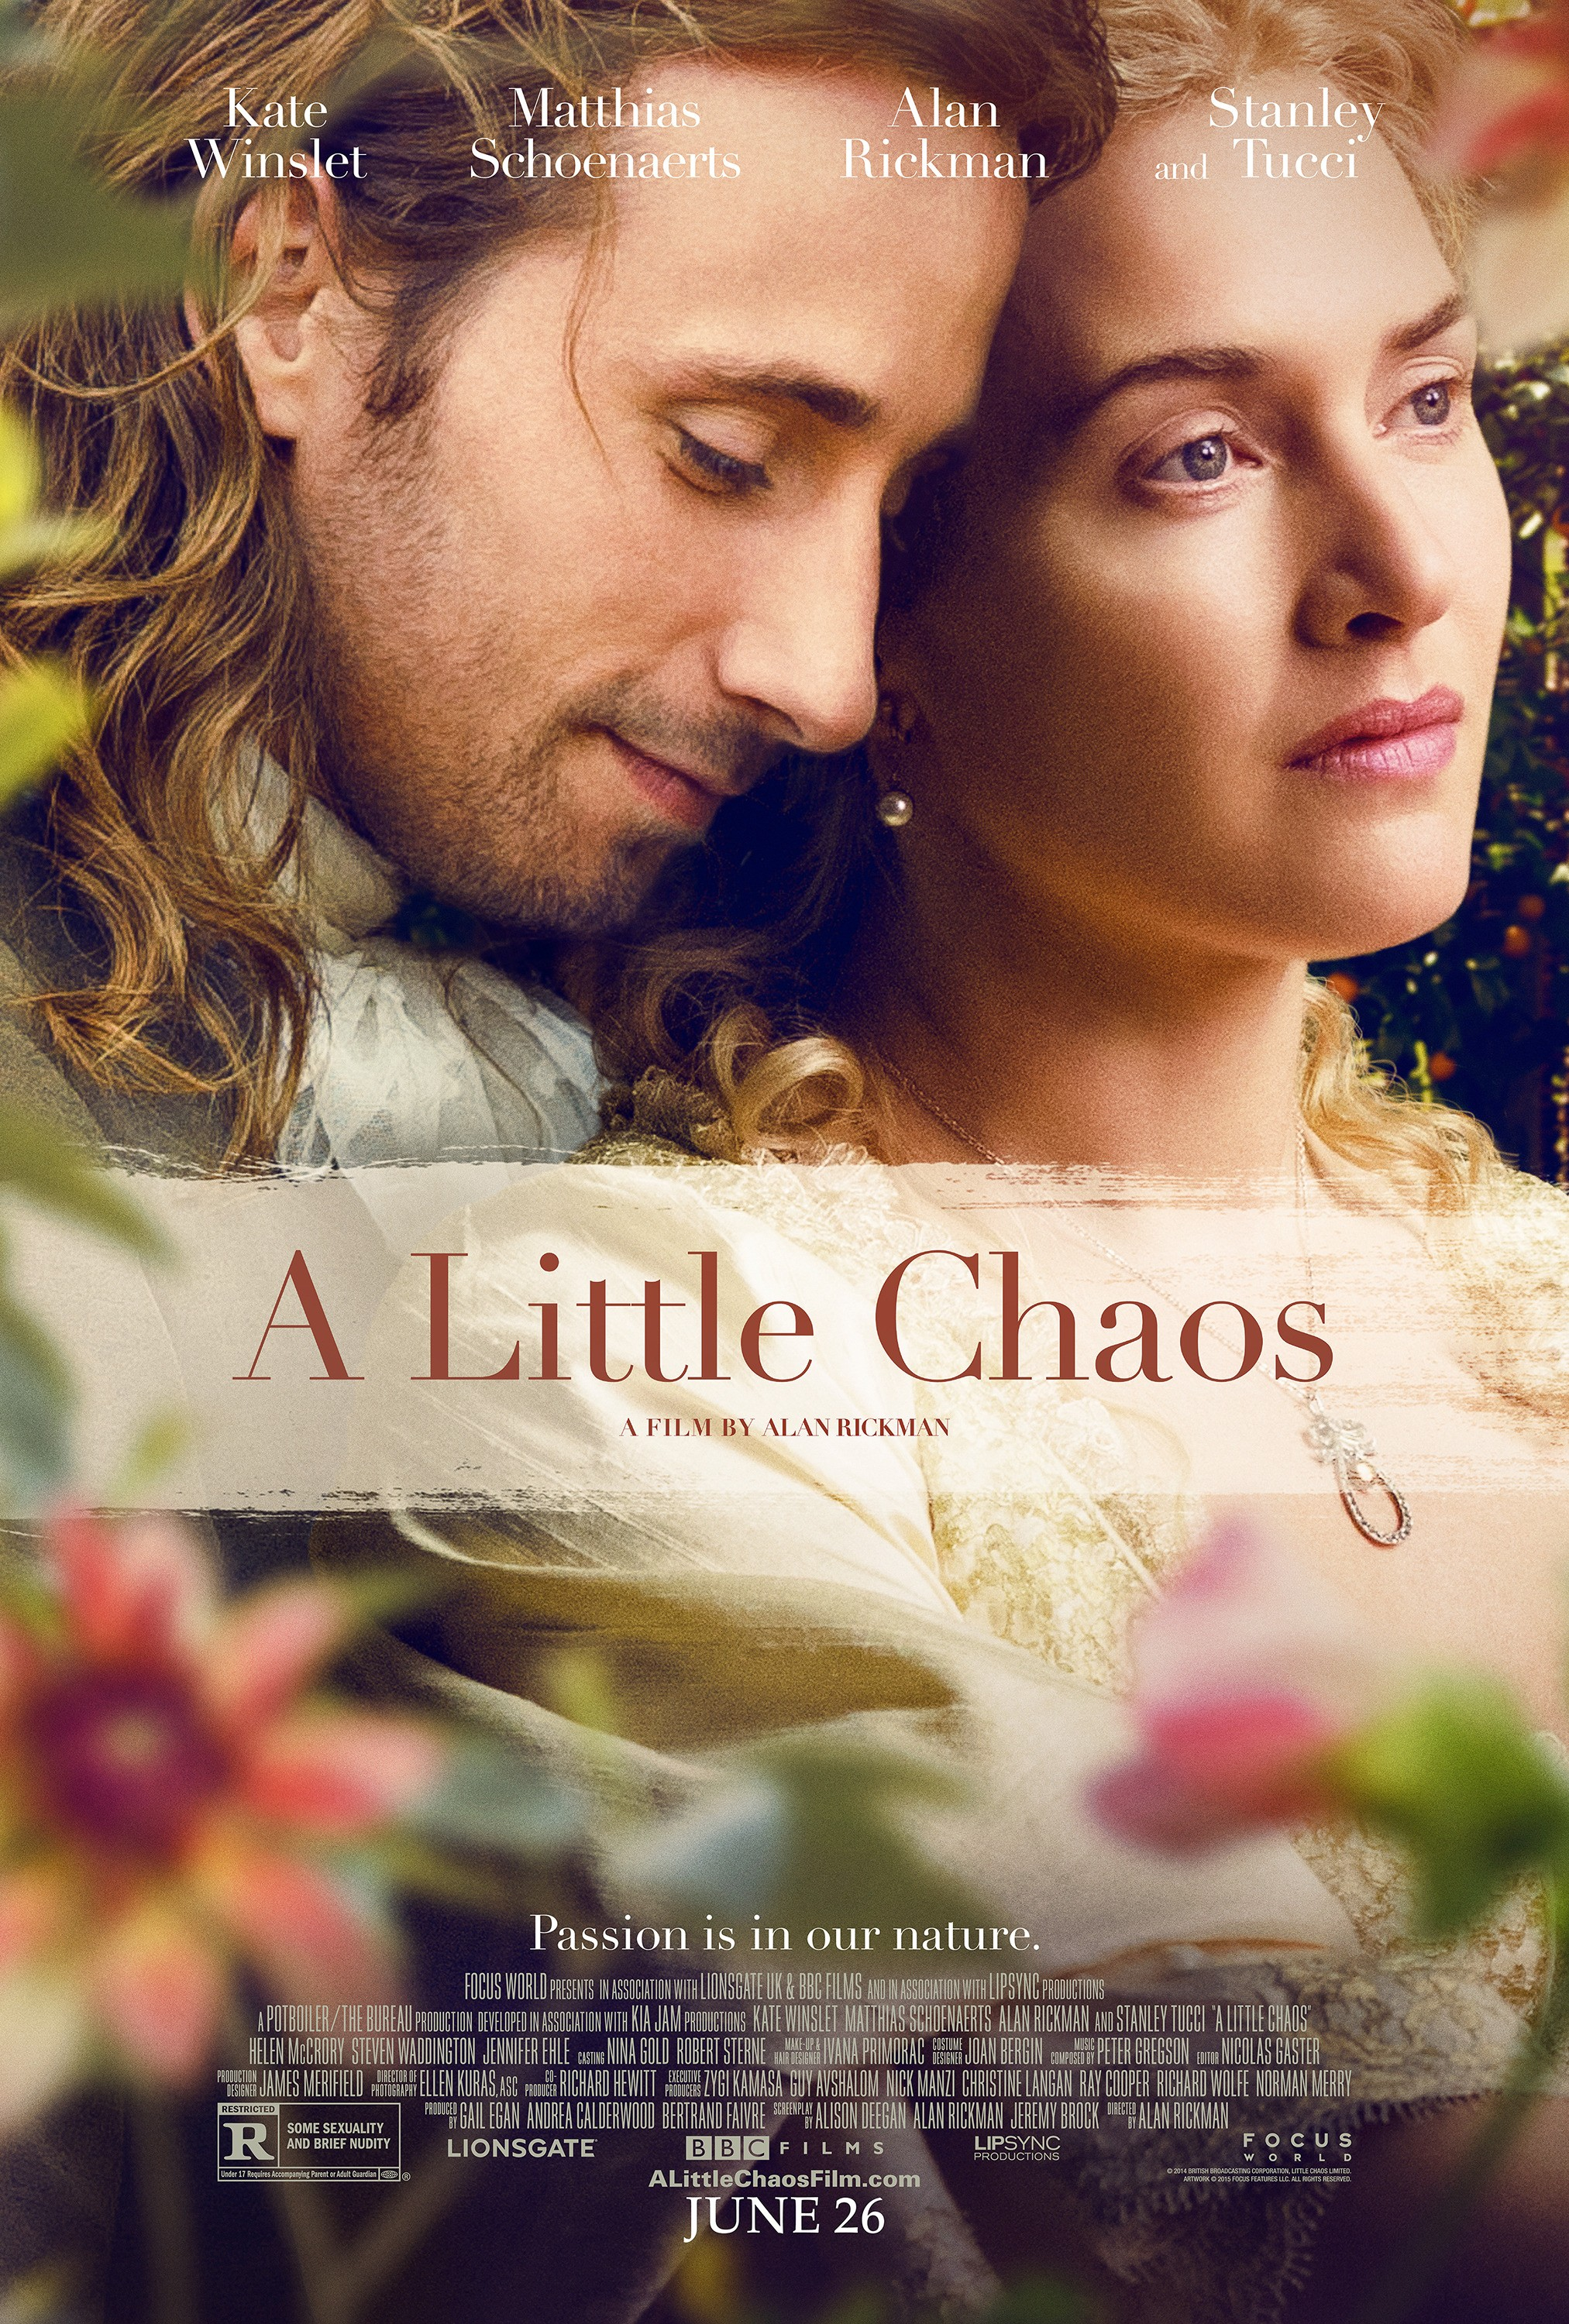 A Little Chaos-Poster XXLG-15Abril2015-01